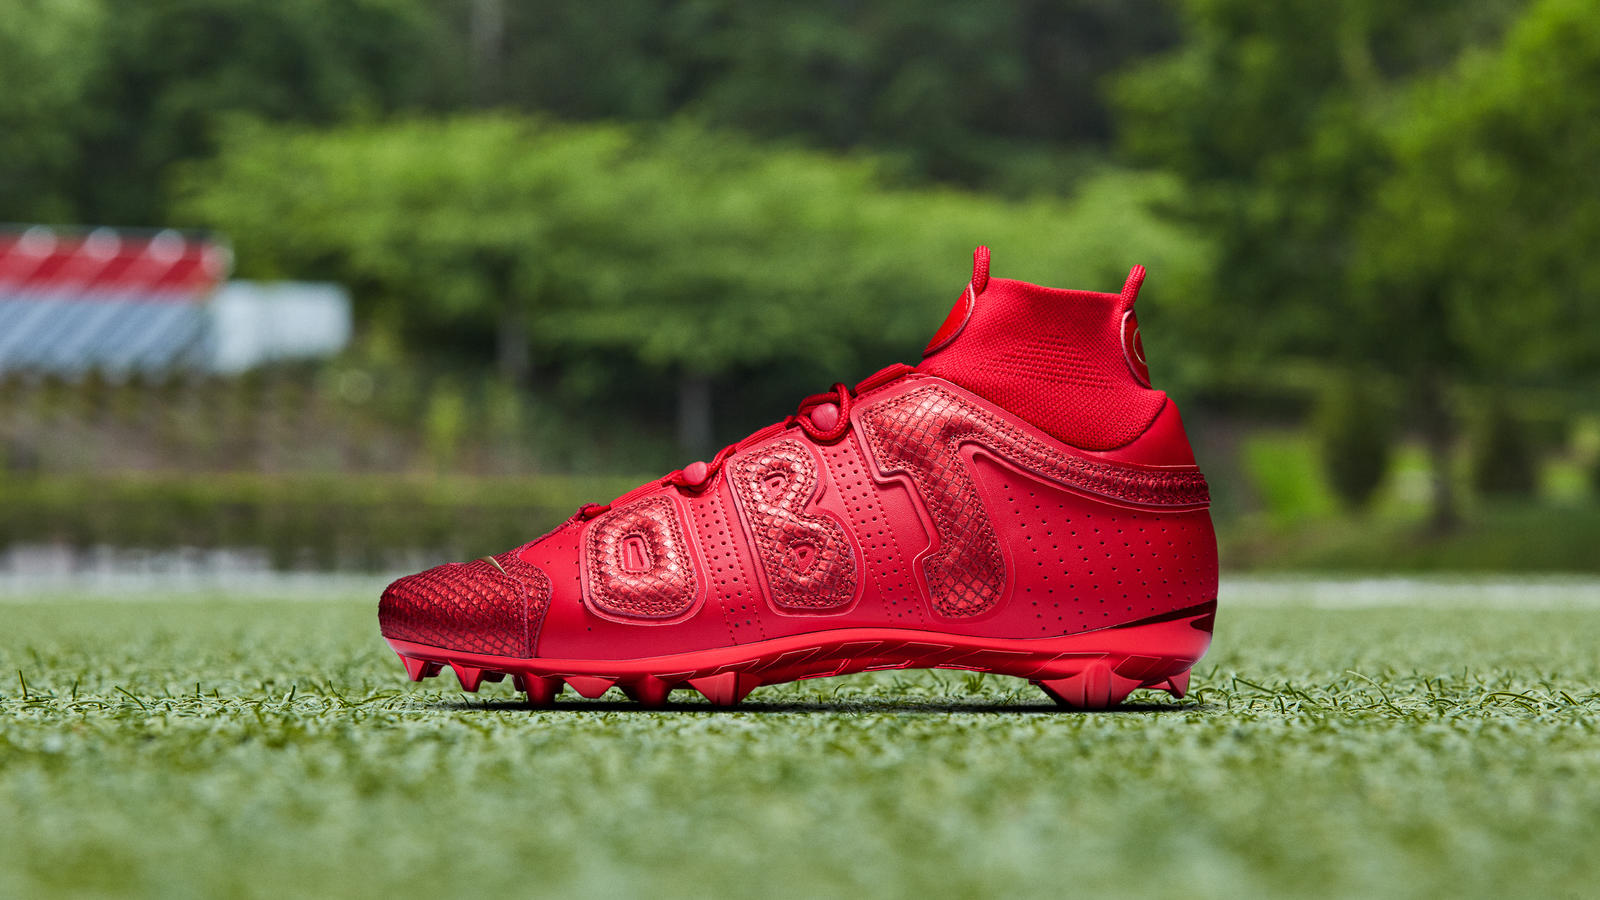 9df83fba7 Nike Vapor Untouchable Pro 3 OBJ Uptempo Cleat - Nike News